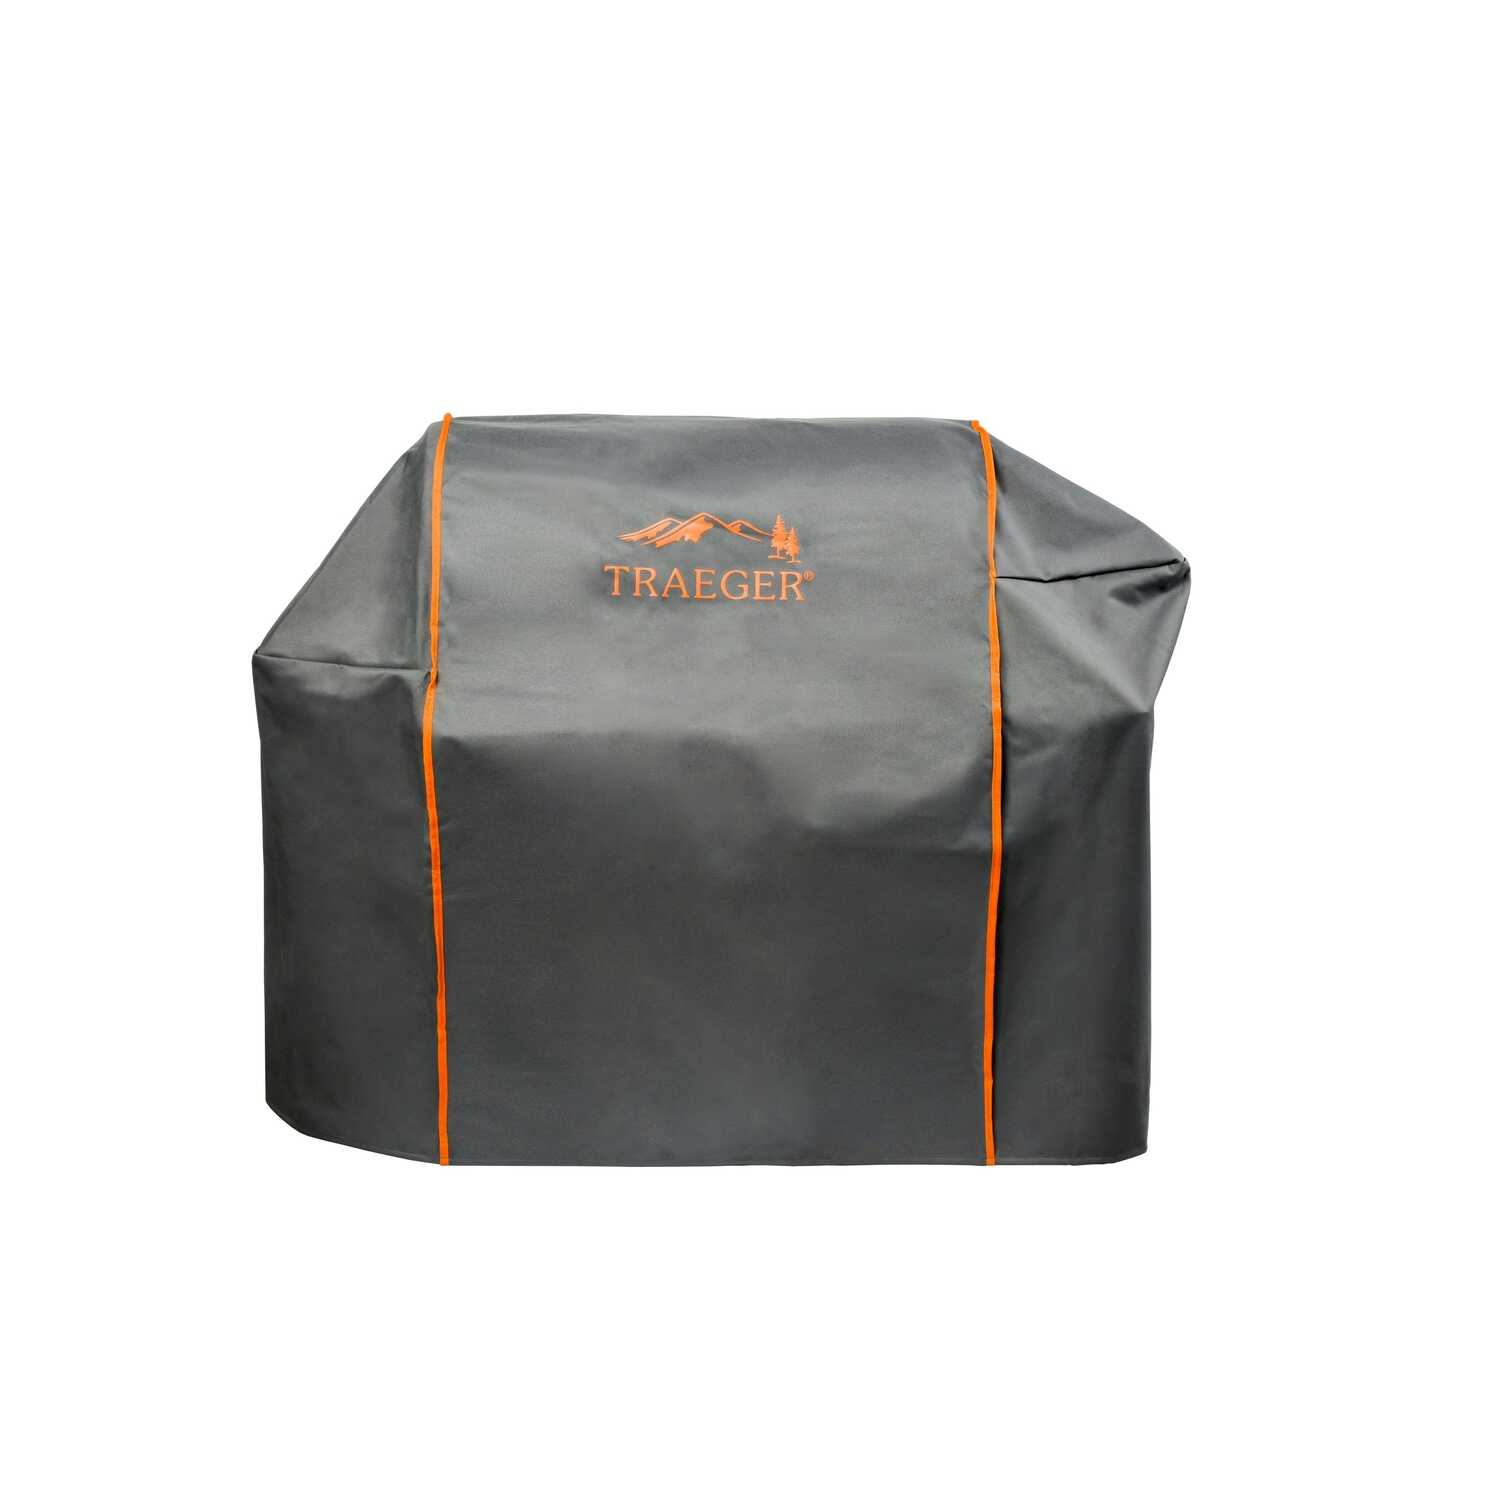 Traeger  Gray  Grill Cover  For Timberline 1300 grill- TFB01WLE 4.5 in. W x 10.5 in. H